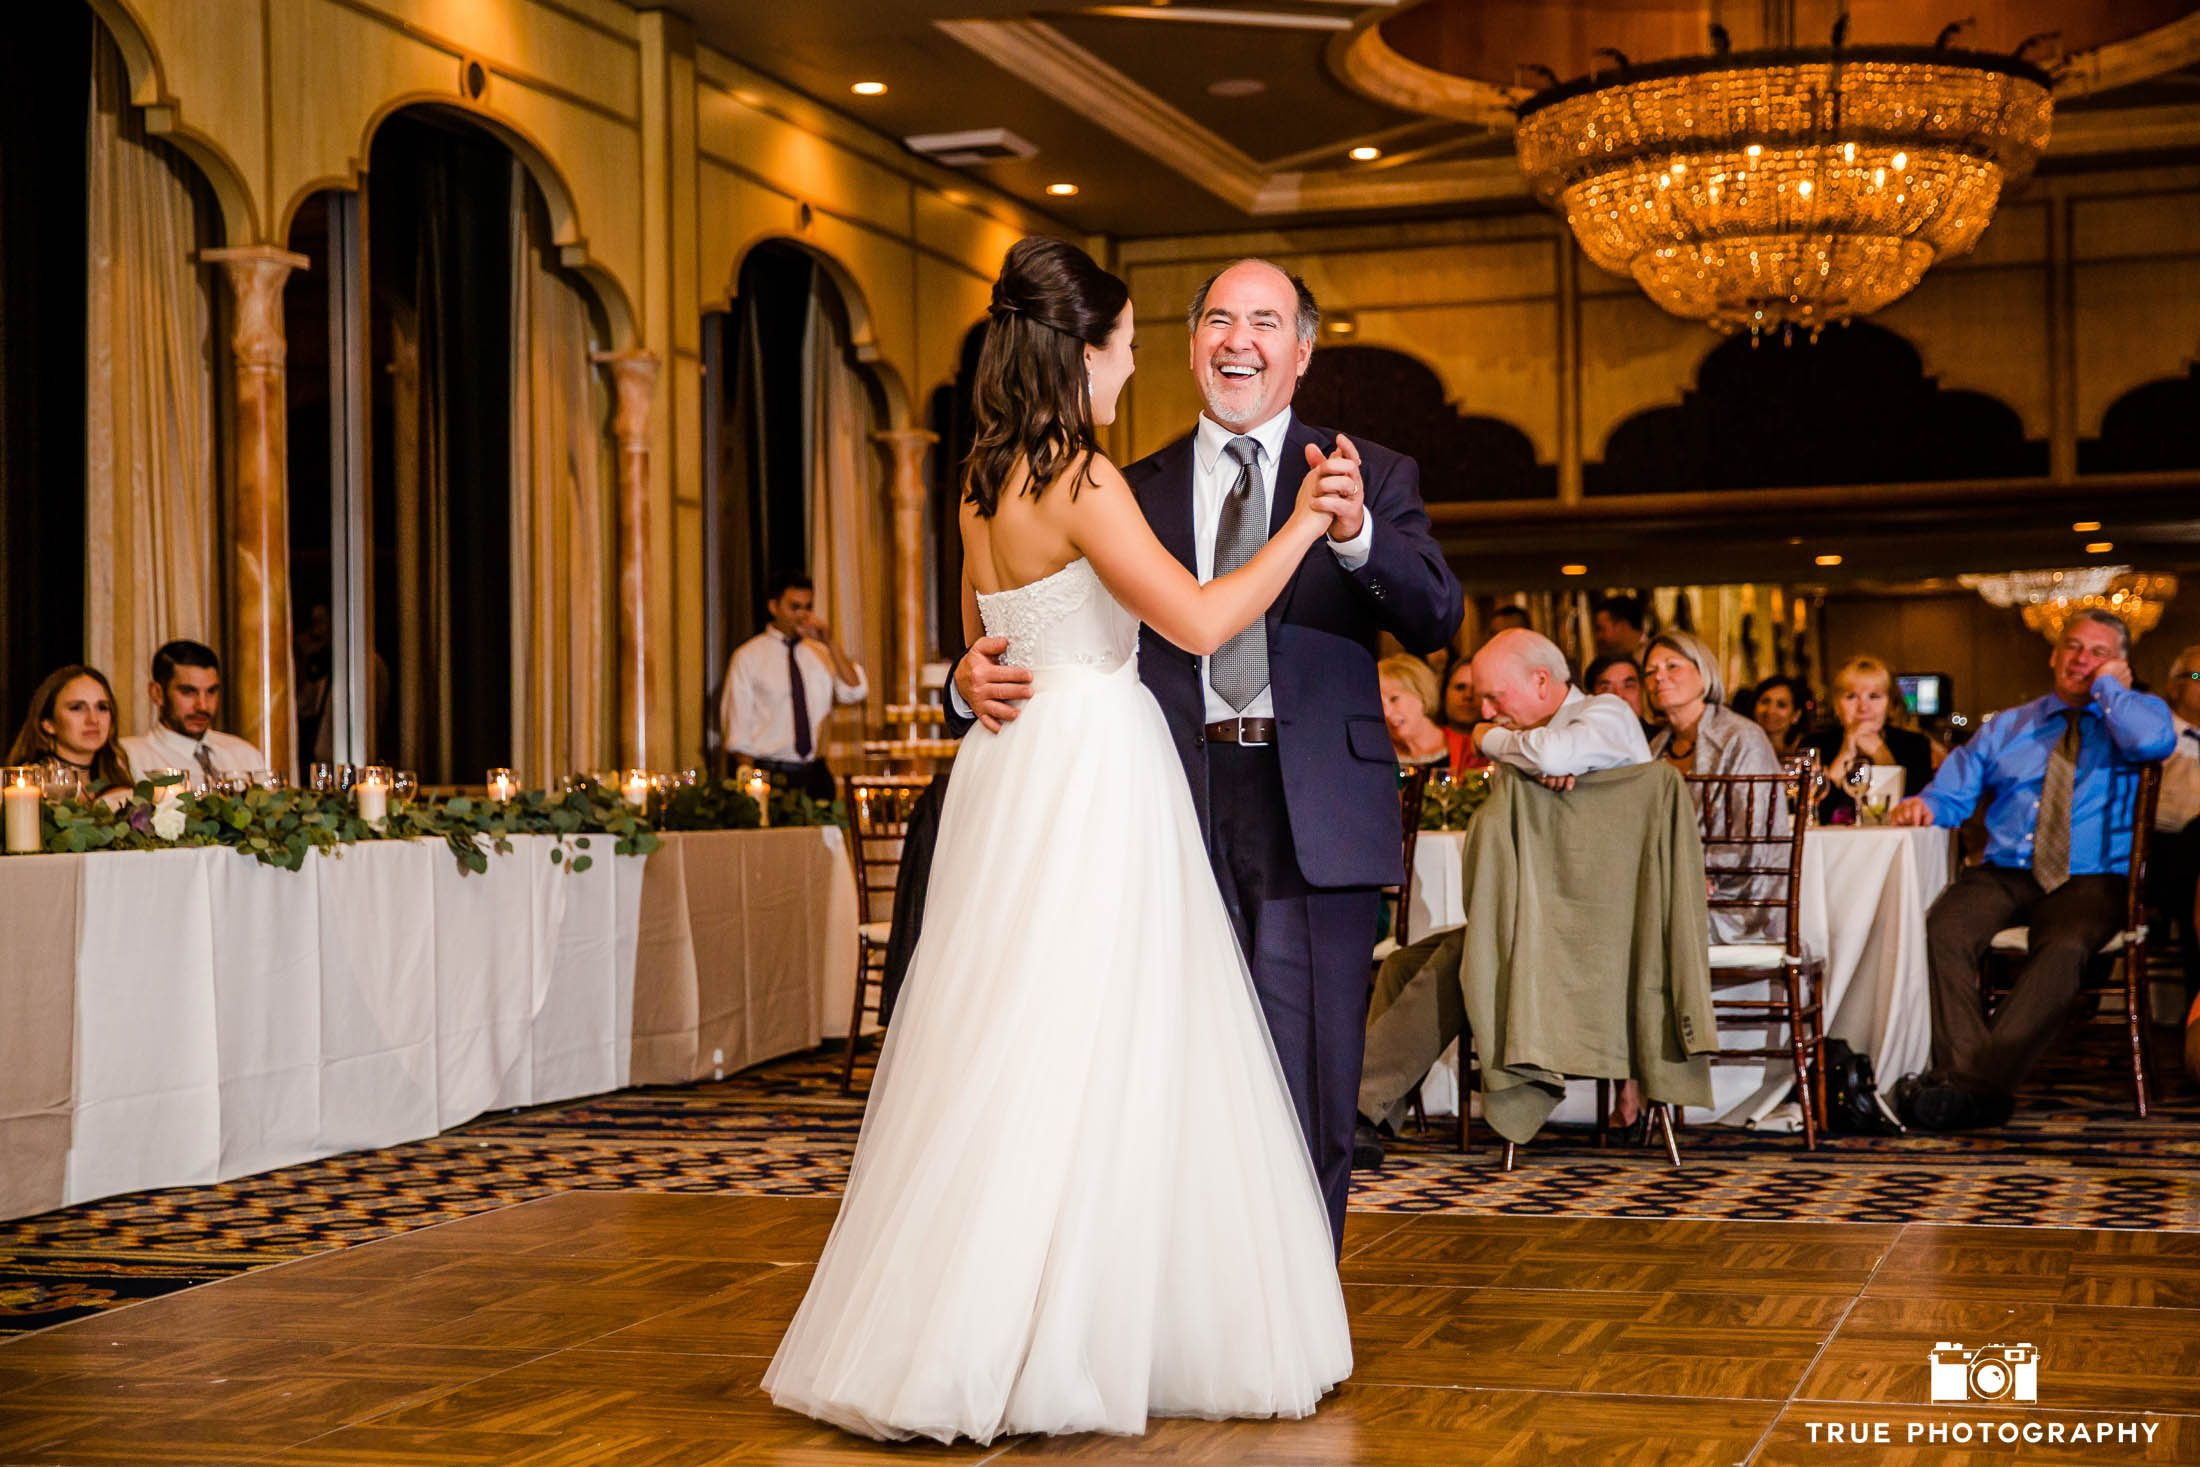 Father smiles while dancing during father and daughter dance at wedding reception